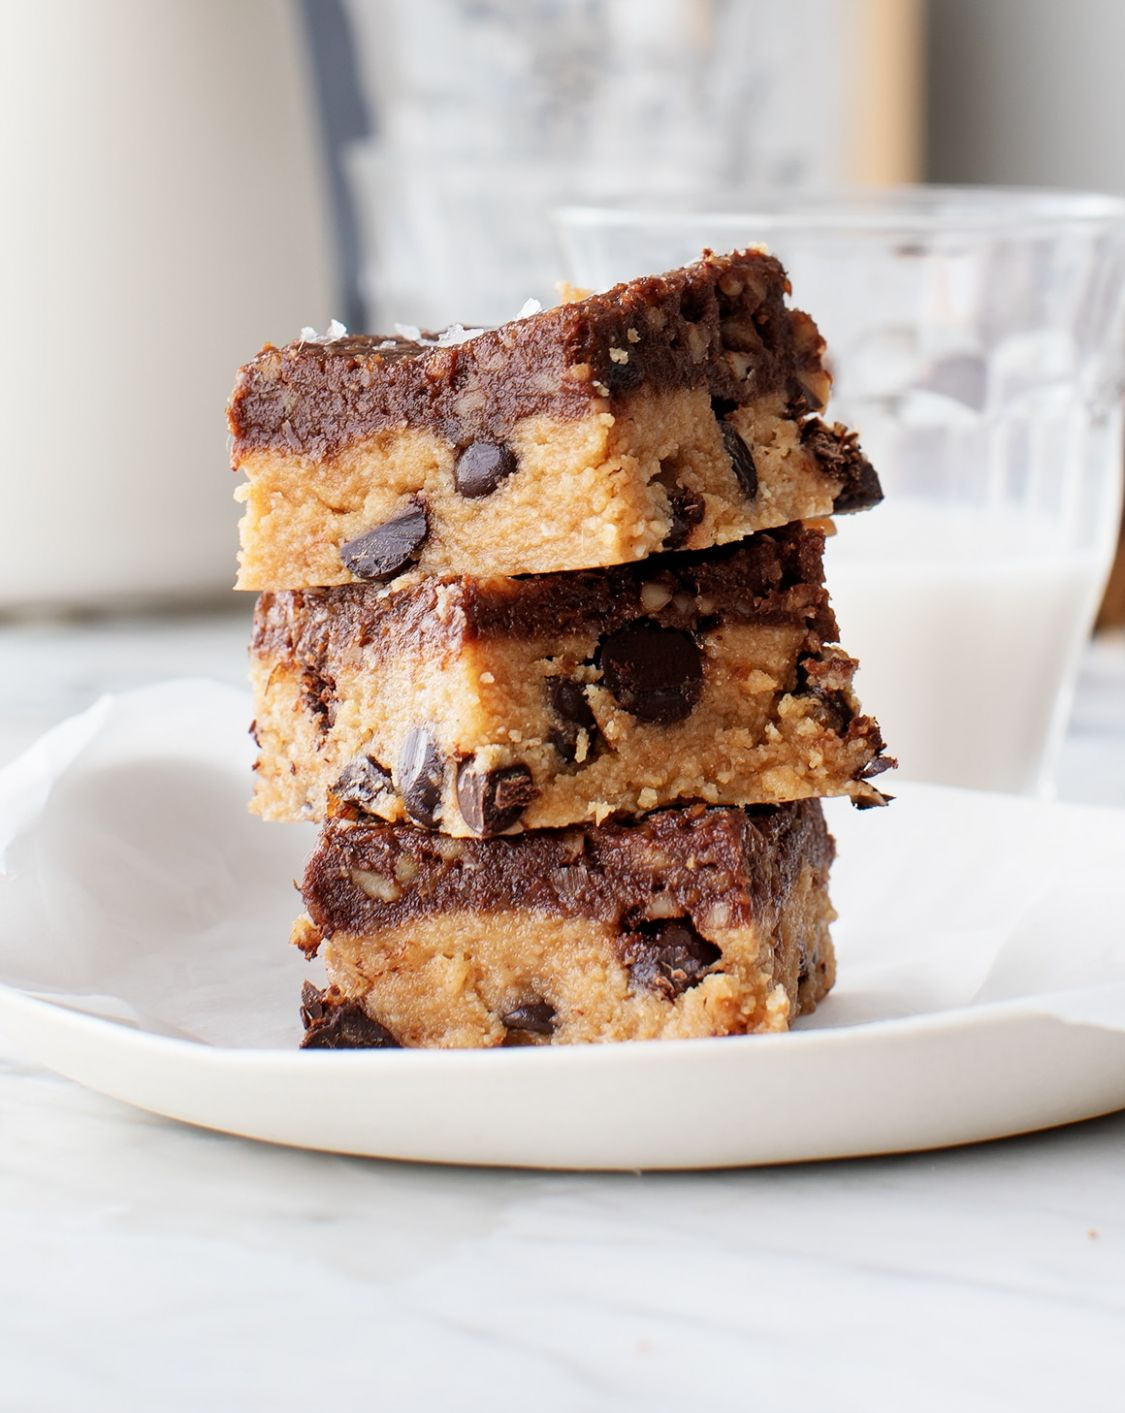 Vegan Desserts: Peanut Butter Cookie Bars - Dessert Recipes Vegan